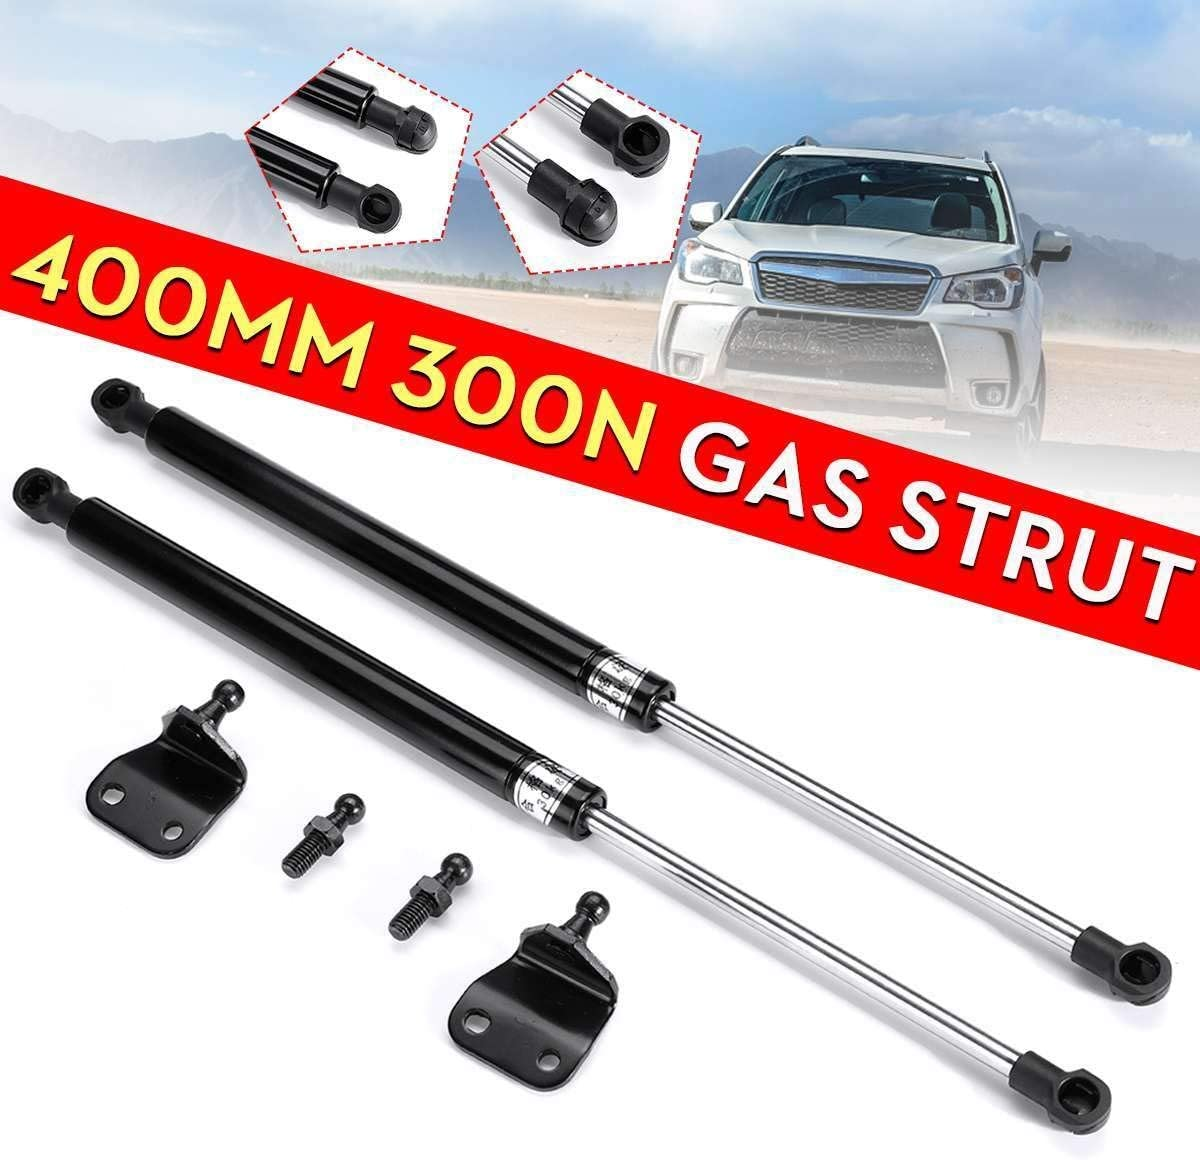 NO LOGO 2X Universal 40cm 400mm 300N Car Struts Front Cover Bonnet Hood Rear Trunk Tailgate Boot Shock Lift Strut Support Bar Gas Spring